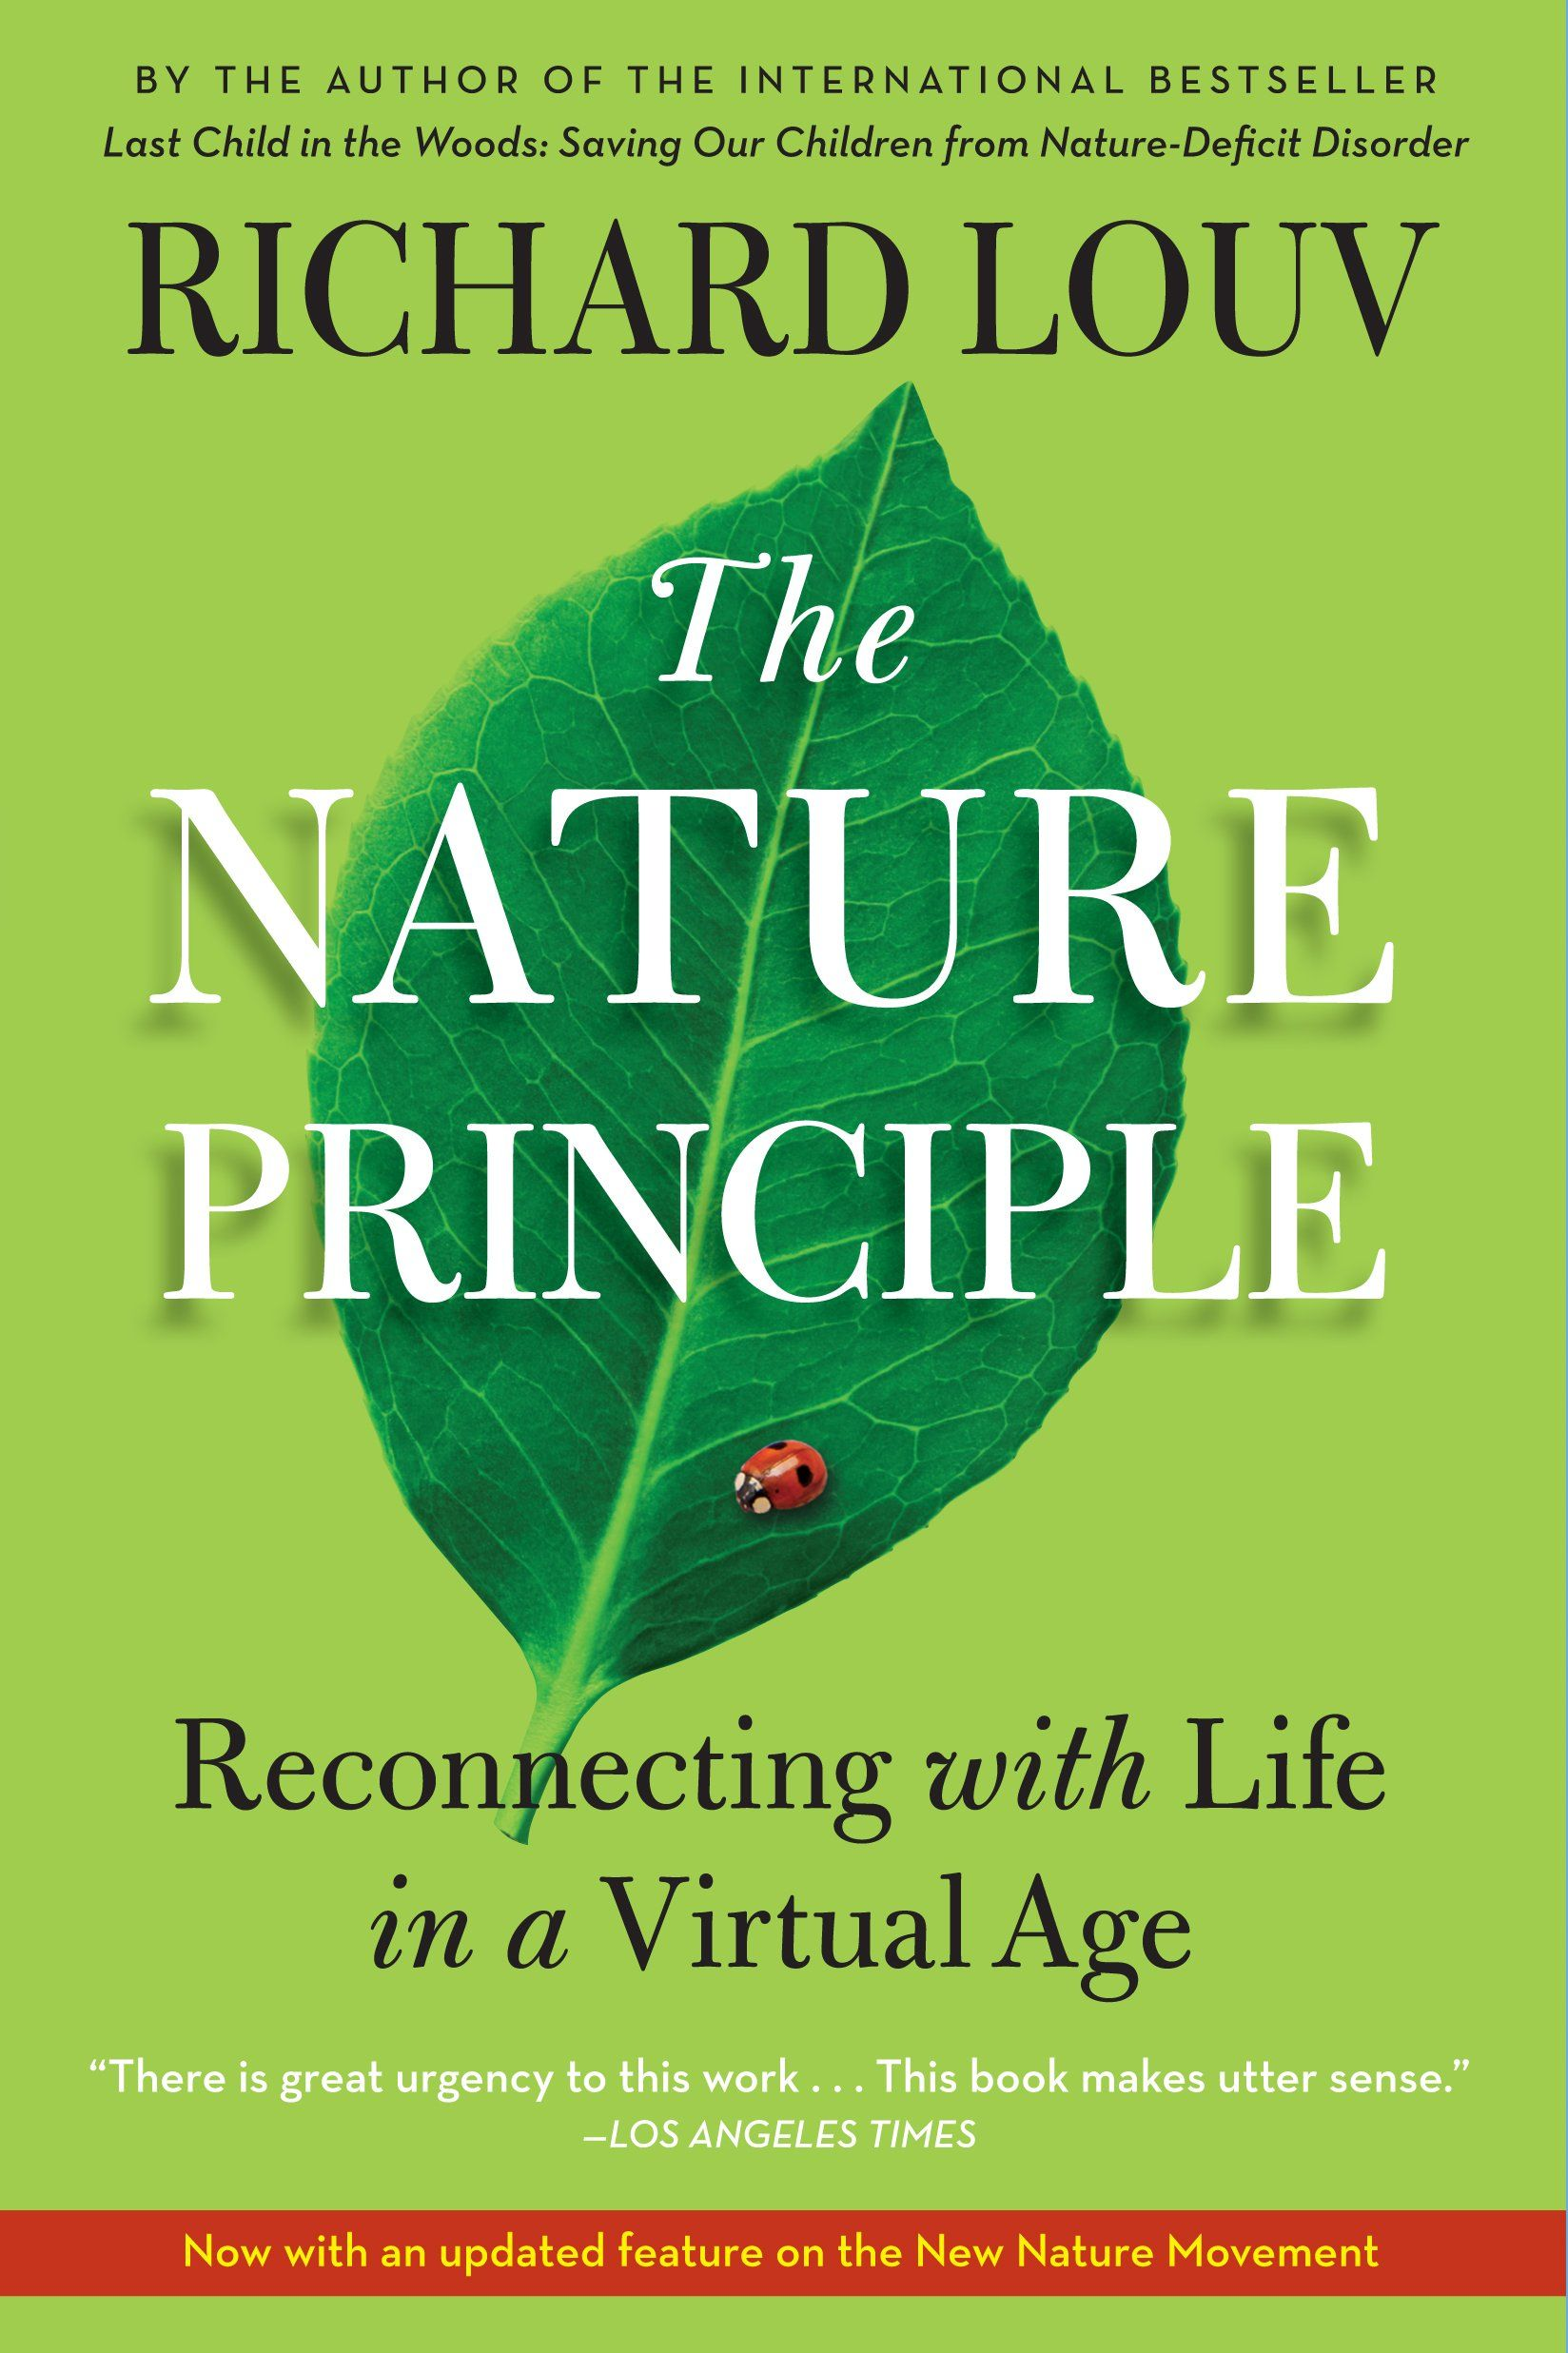 The Nature Principle Reconnecting With Life In A Virtual Age Richard Louv 9781616201418 Amazon Com Books Richard Louv Books Nature Deficit Disorder